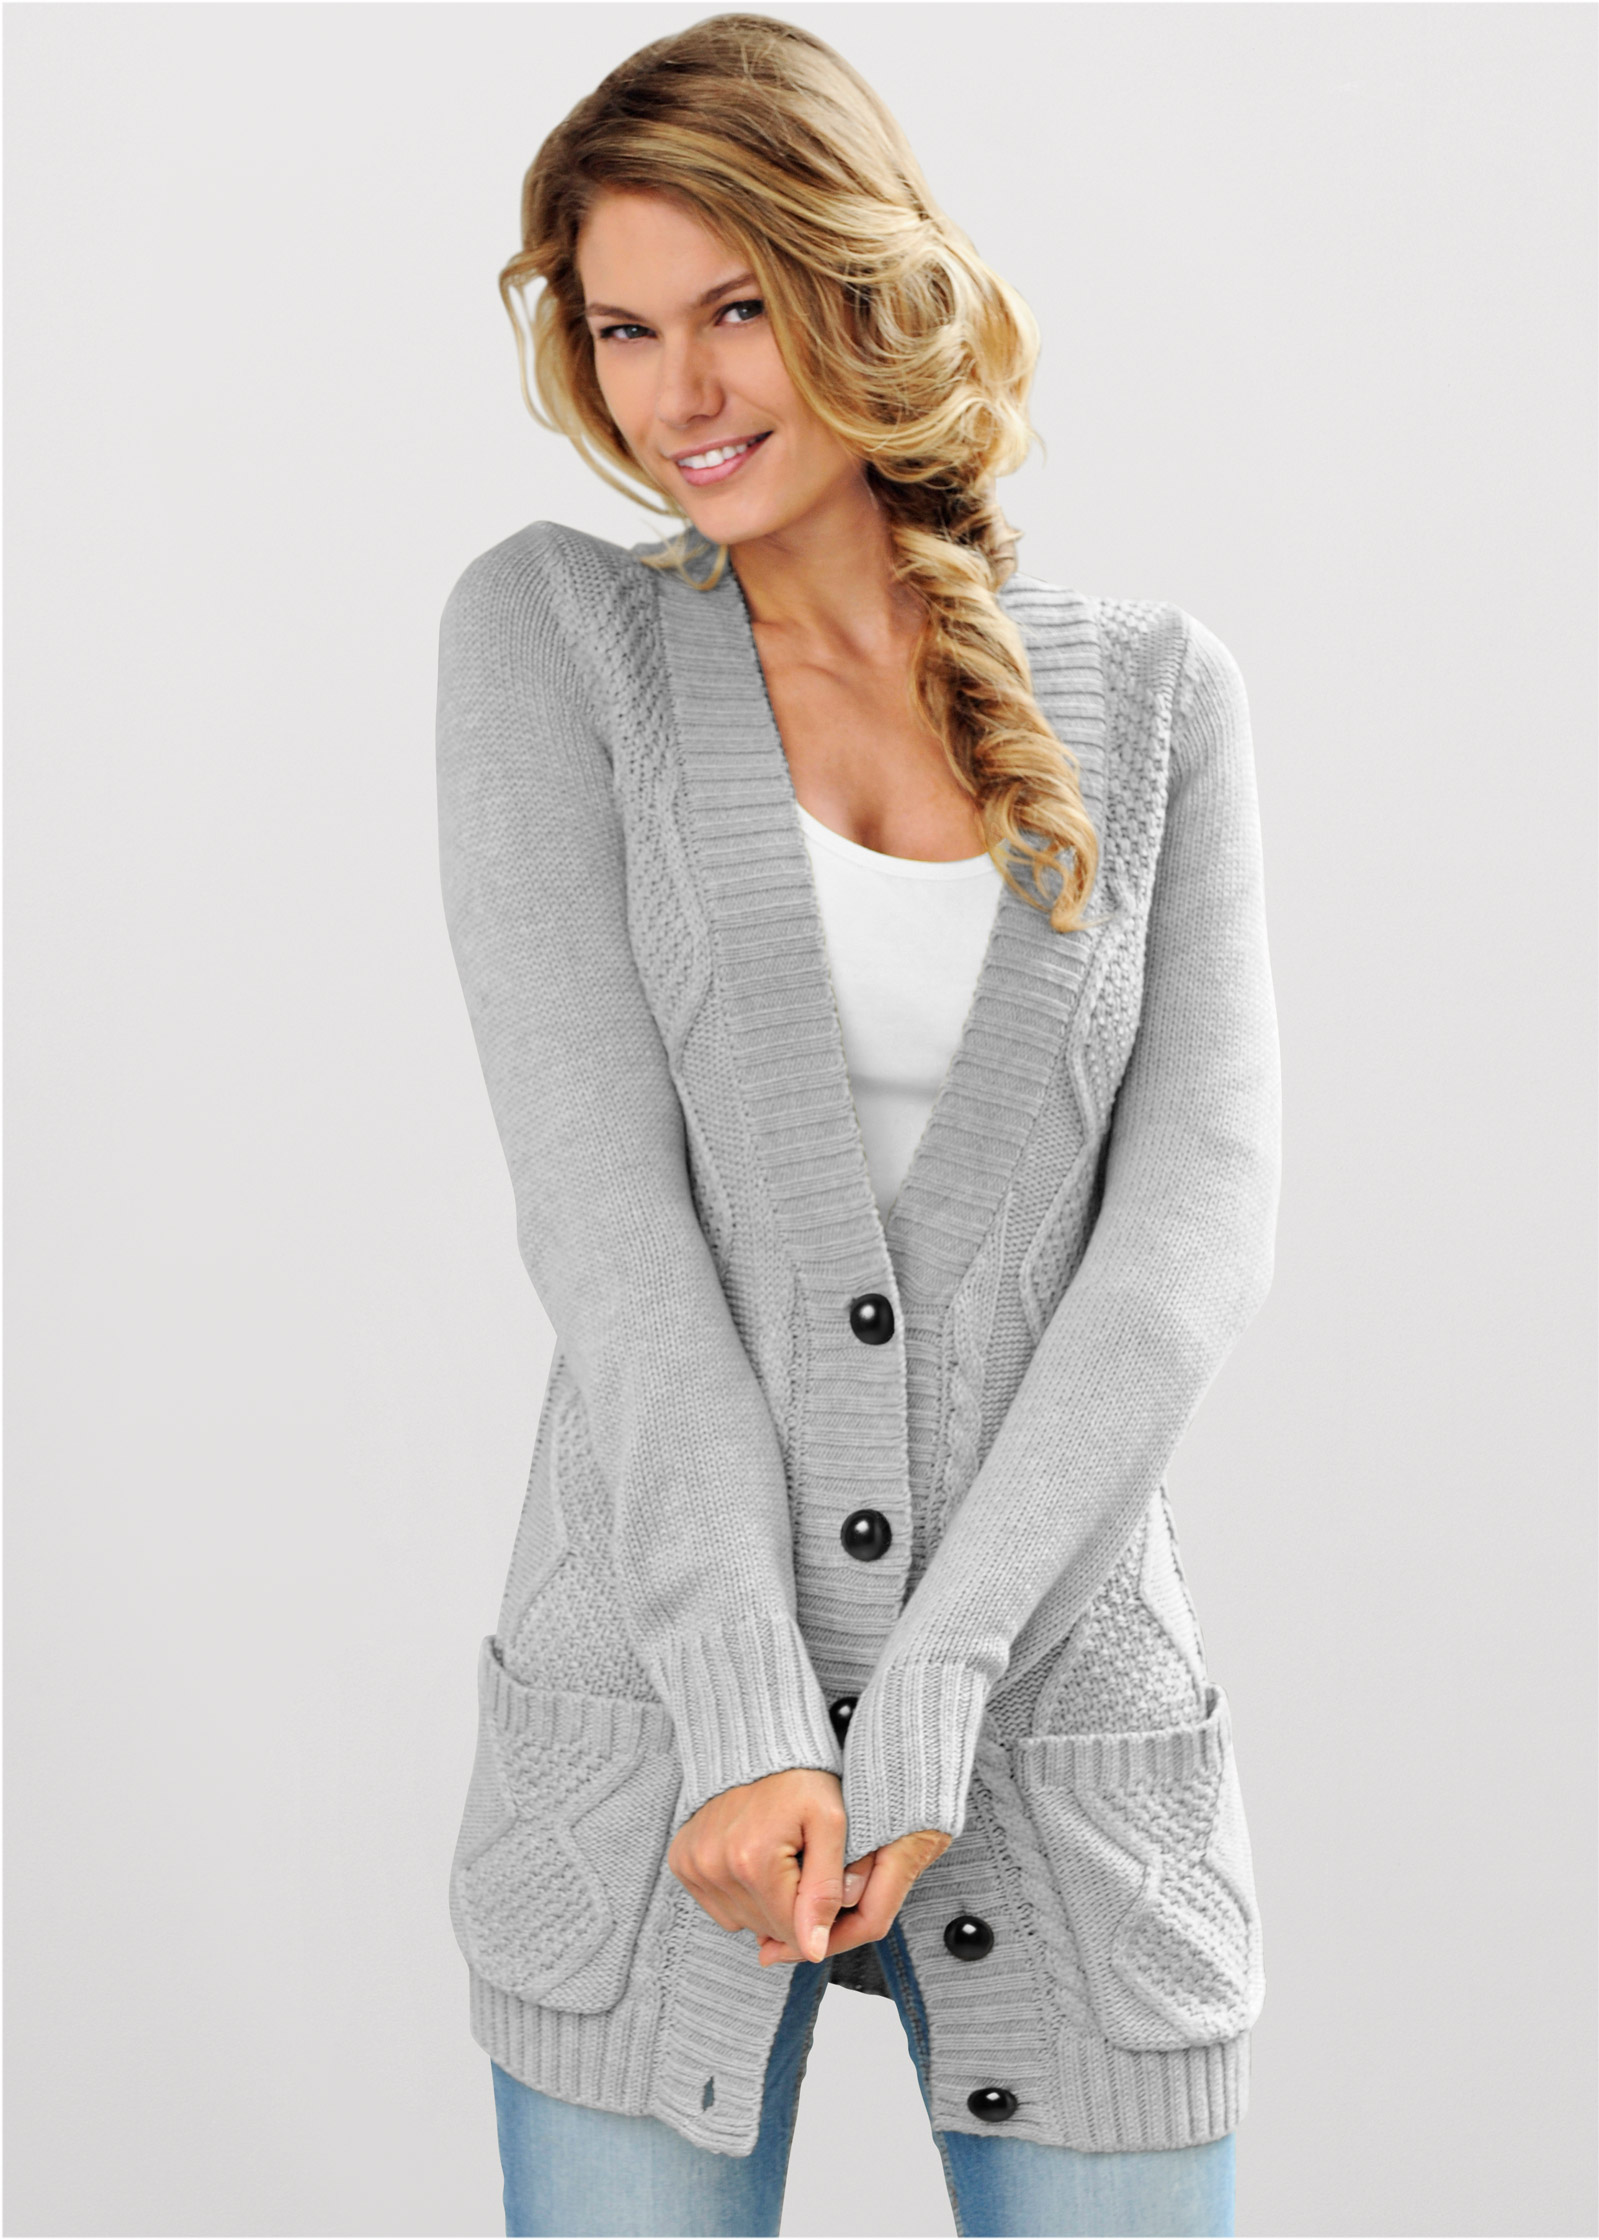 From lightweight cardigans for spring evenings to heavier long-sleeved cardigans for crisp fall days, Kohl's has a wide selection of the latest cardigan styles. Find cropped cardigans for that edgy look or short shrugs for keeping warm in that cocktail dress.